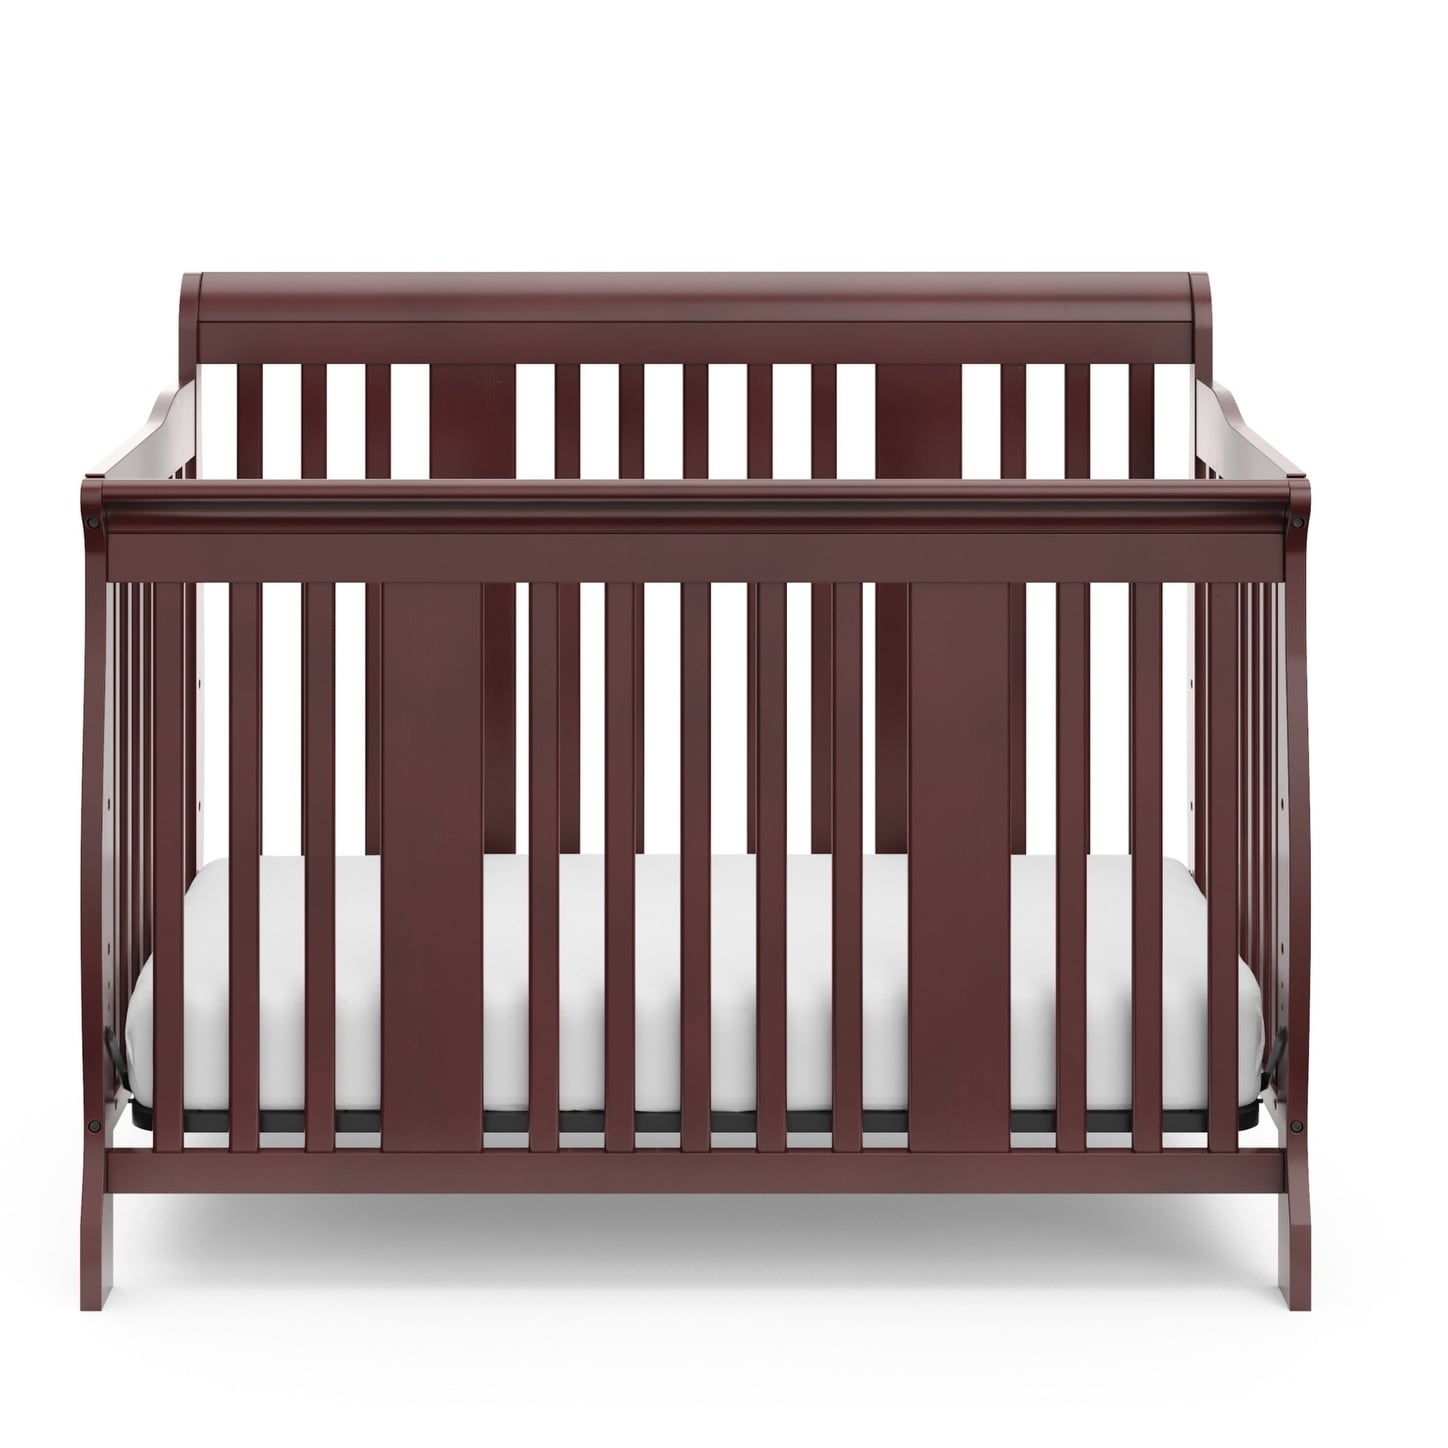 Shop Storkcraft Tuscany 4 In 1 Convertible Crib Converts To